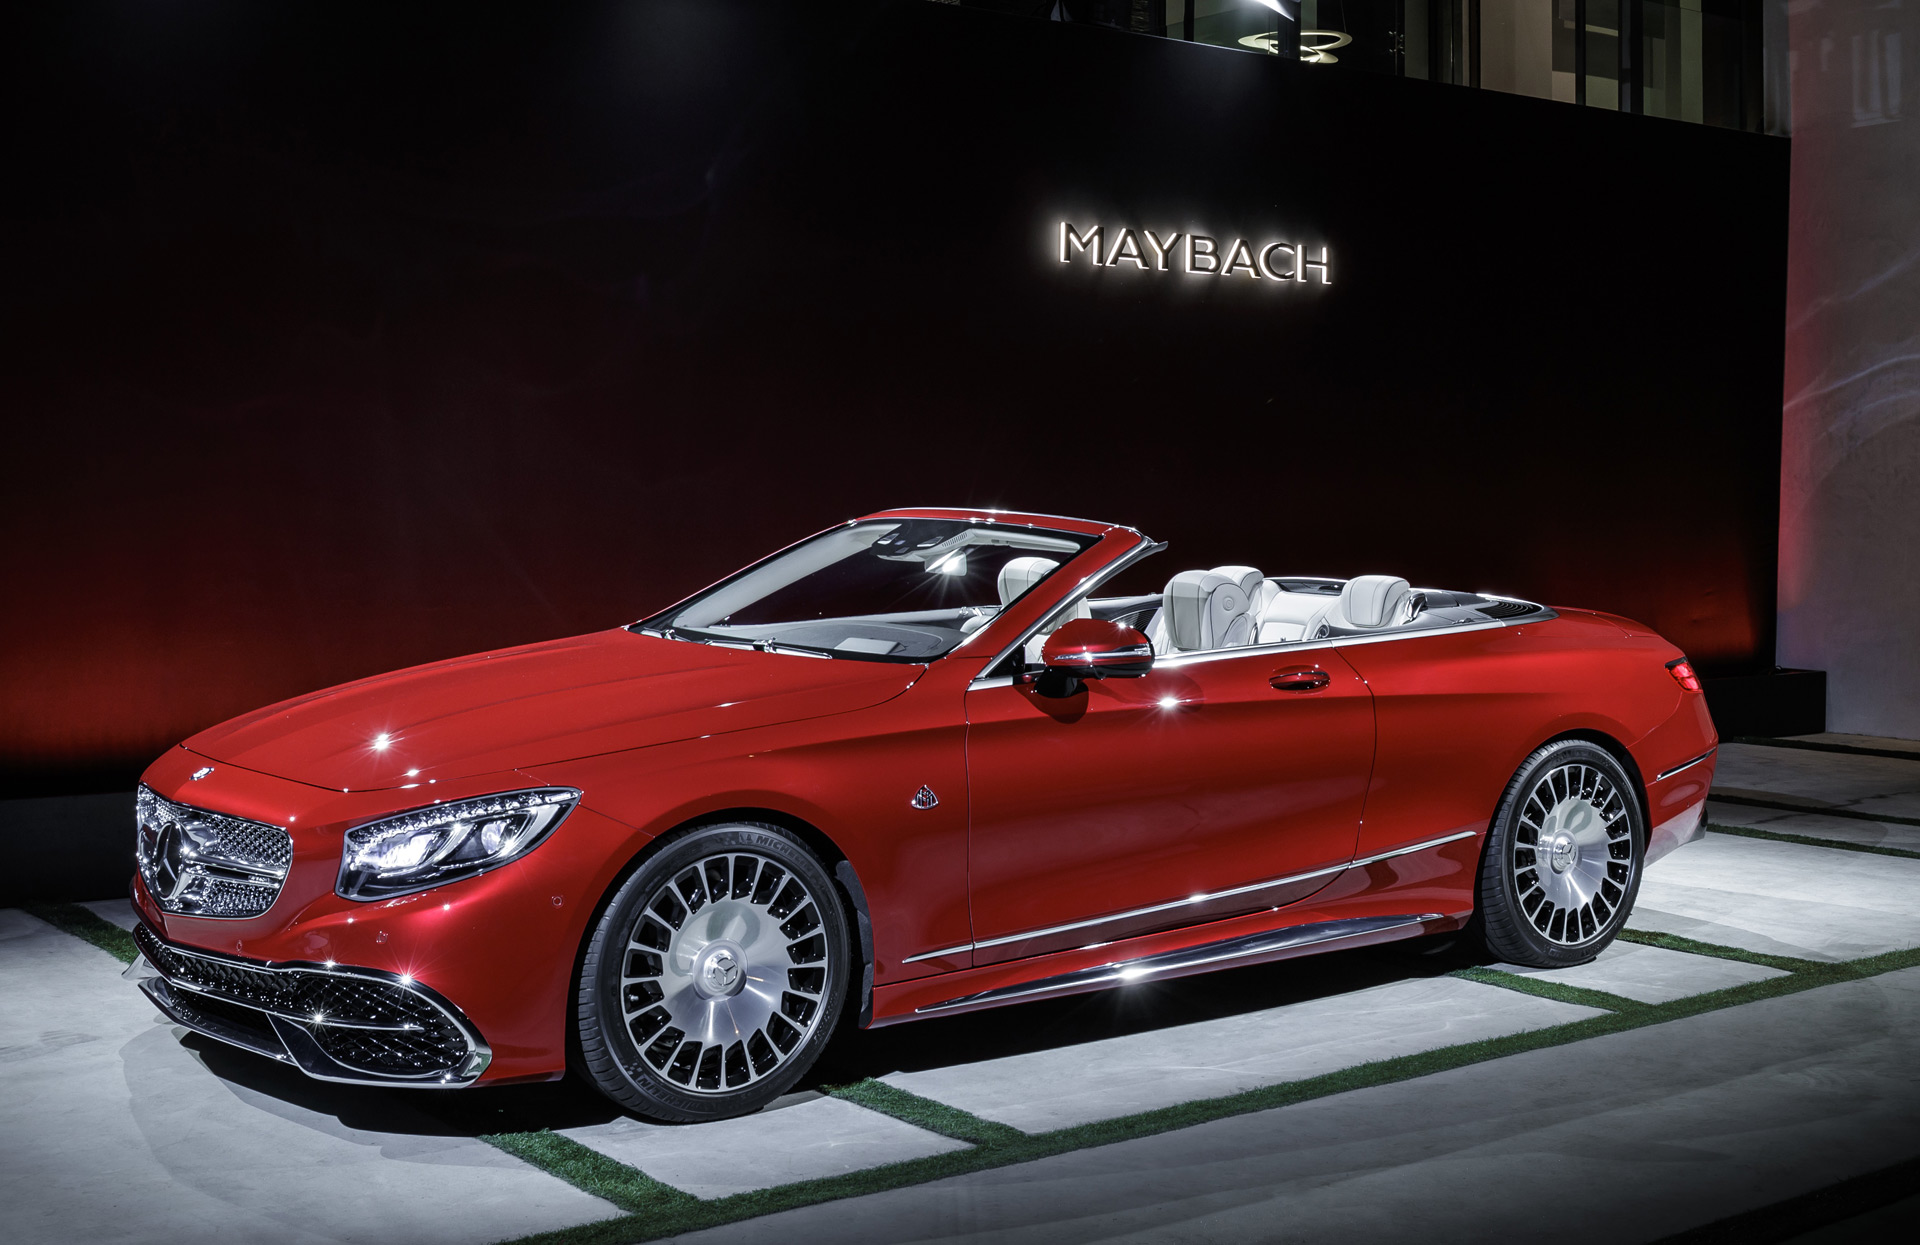 mercedes maybach s650 cabriolet debuts at 2016 la auto show. Black Bedroom Furniture Sets. Home Design Ideas